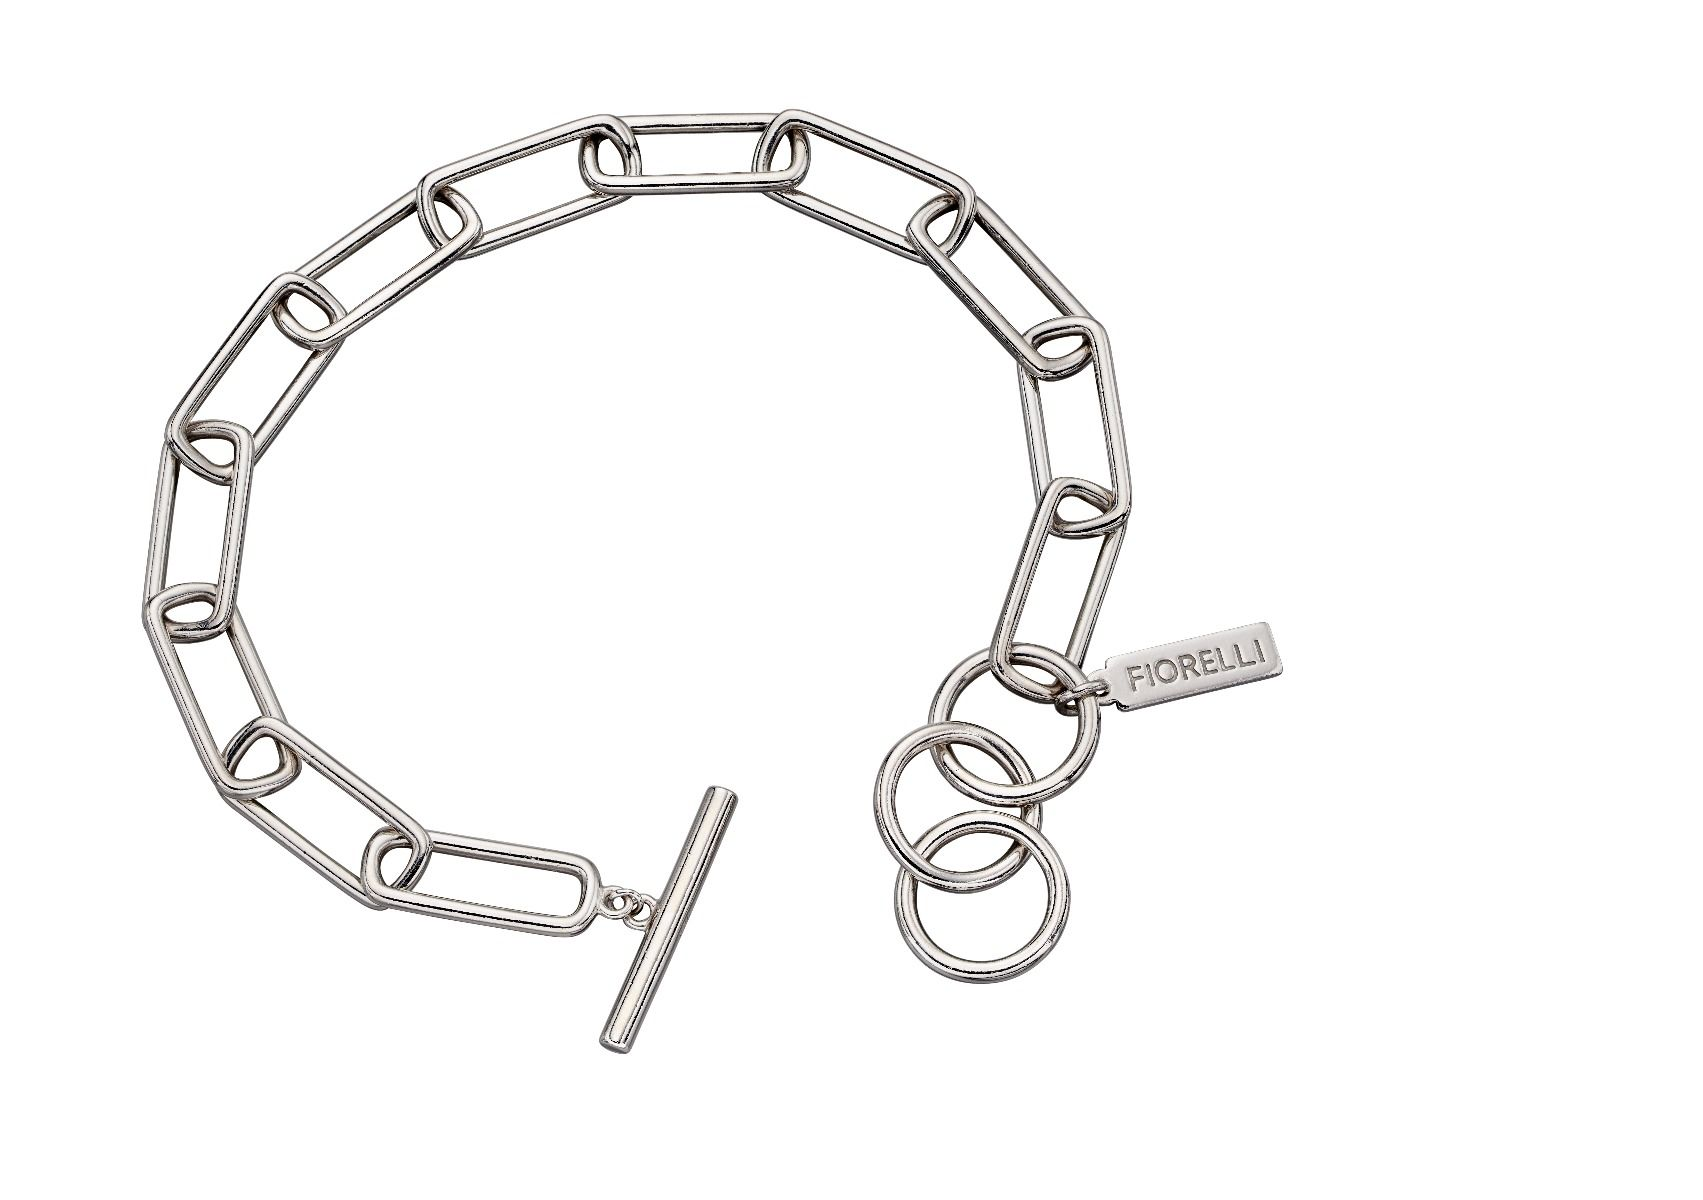 Fiorelli Silver Womens 925 Sterling Silver Wide Link Chain Charm Carrier Bracelet of Length 19cm